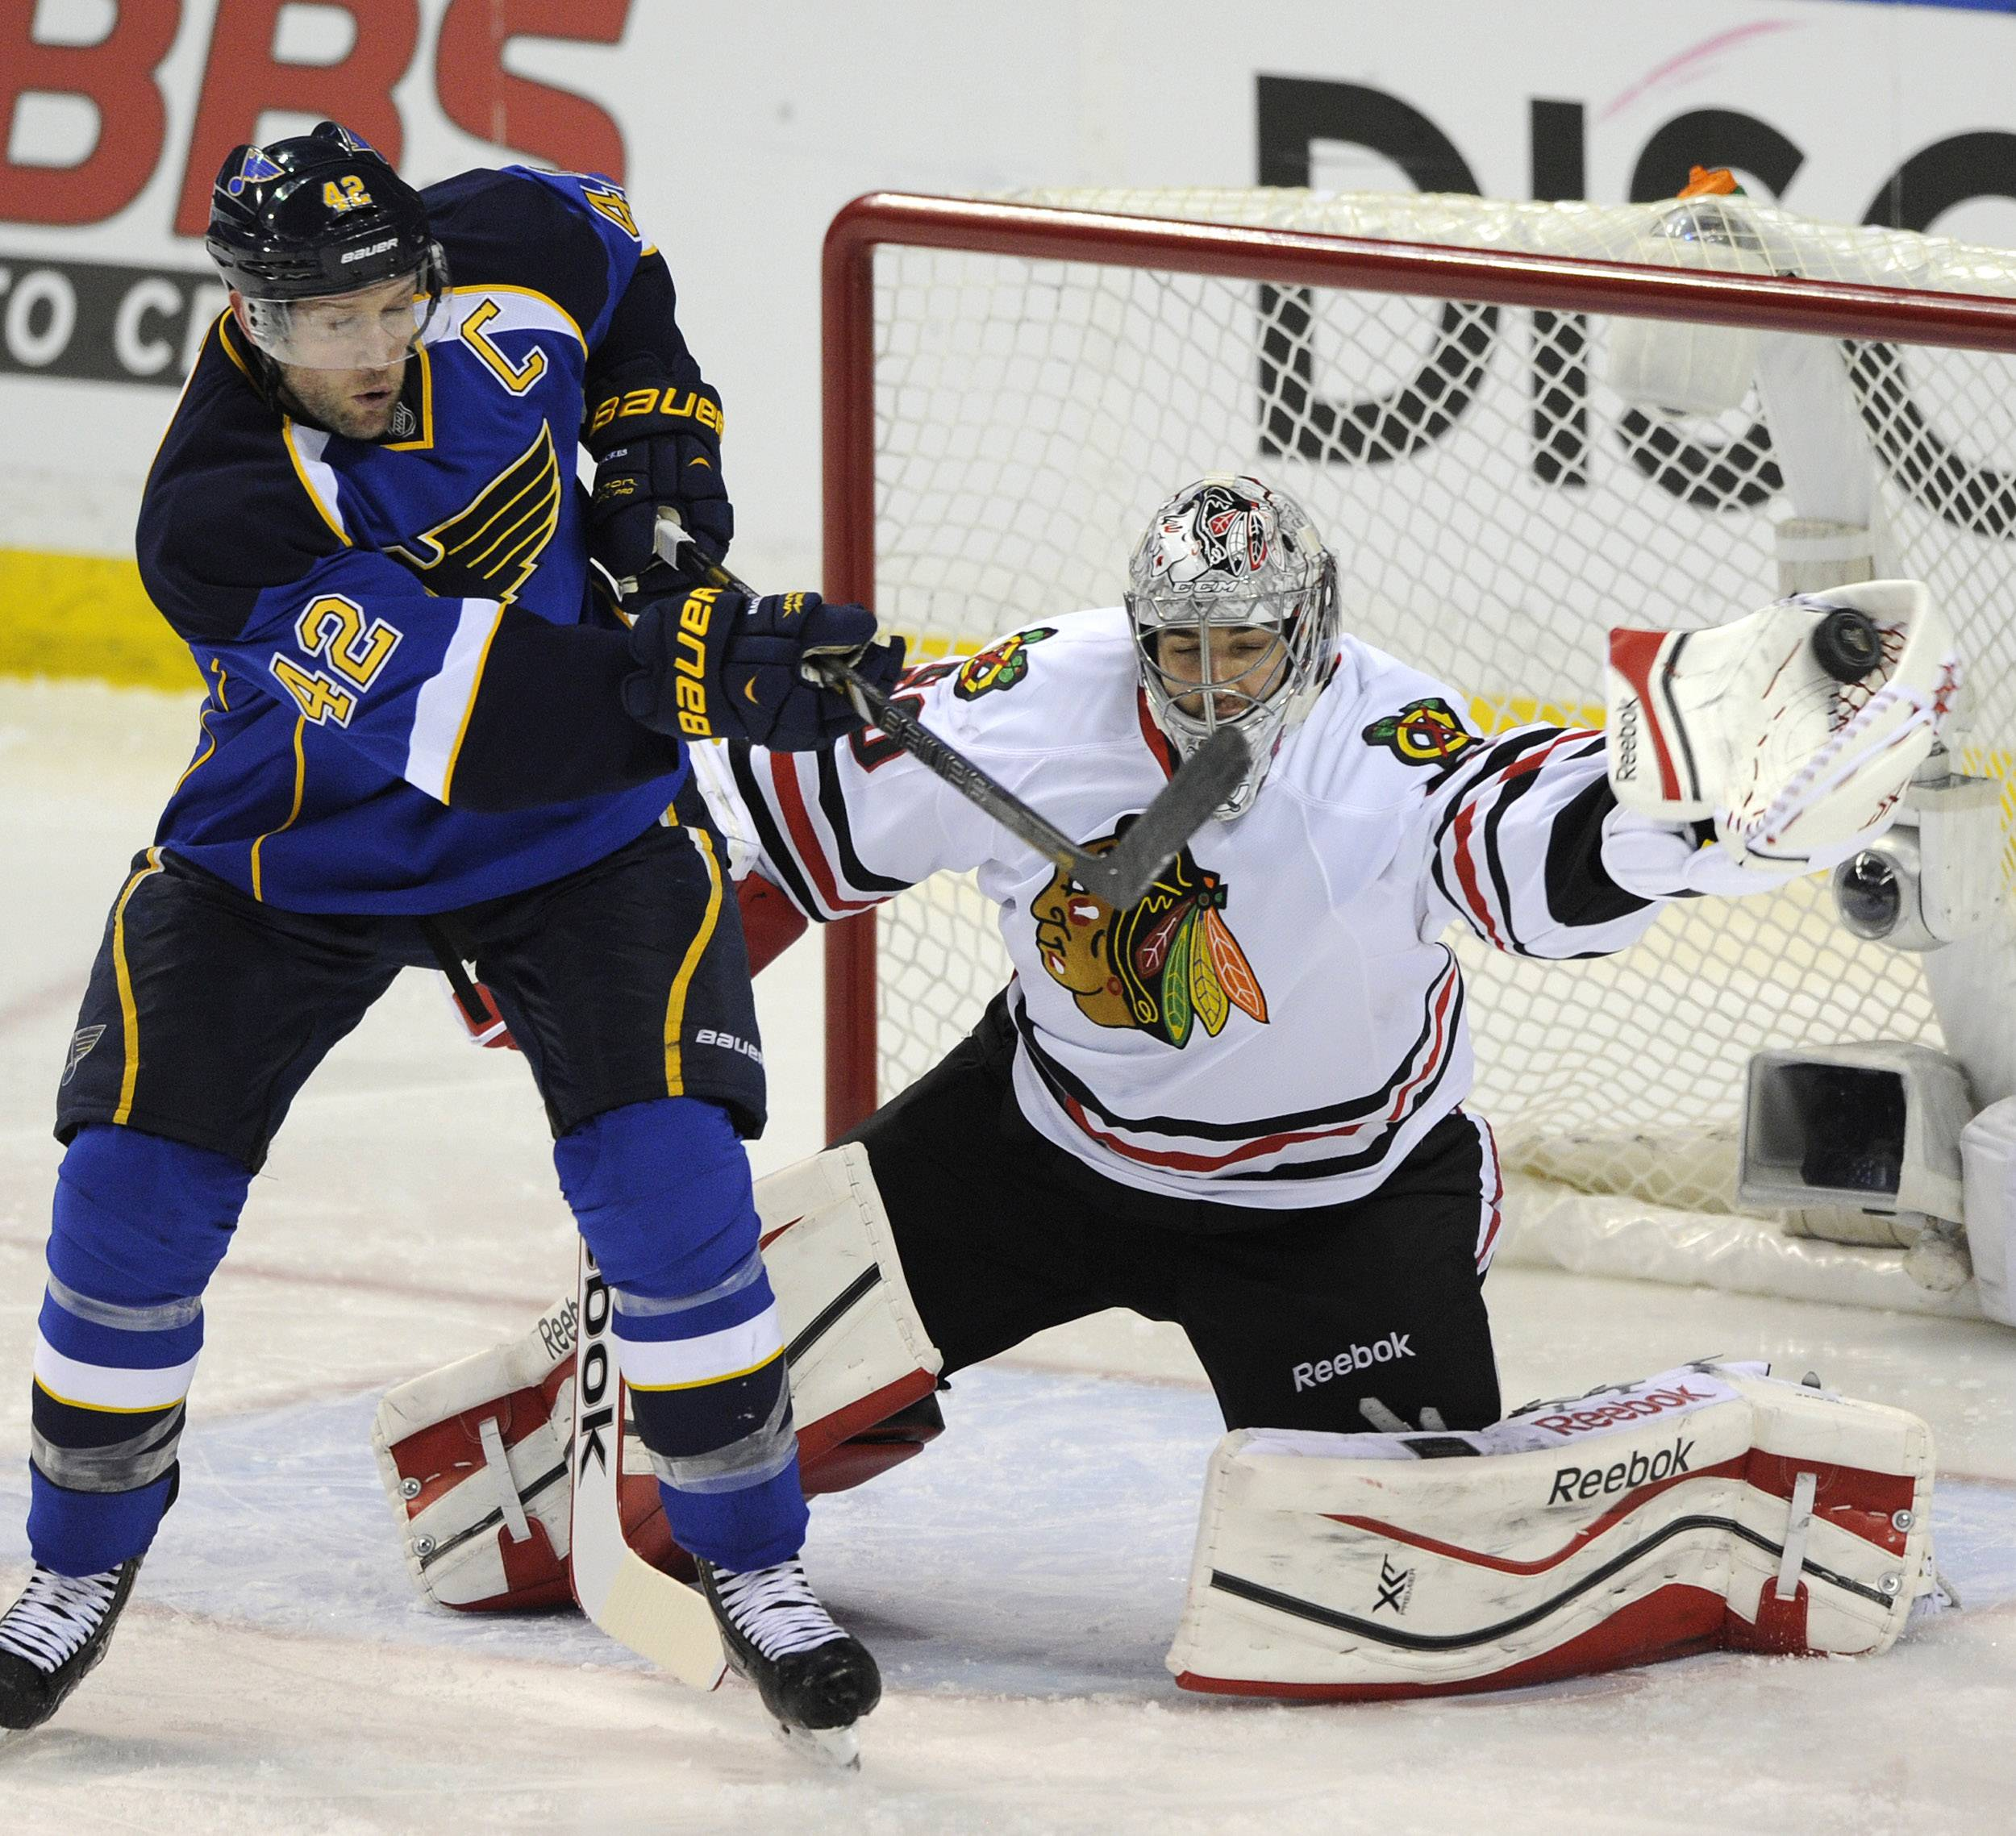 Chicago Blackhawks' goalie Corey Crawford, right, makes a glove-save against St. Louis Blues' David Backes (42) during the second period in Game 2 of a first-round NHL hockey playoff series on Saturday, April 19, 2014, in St. Louis.